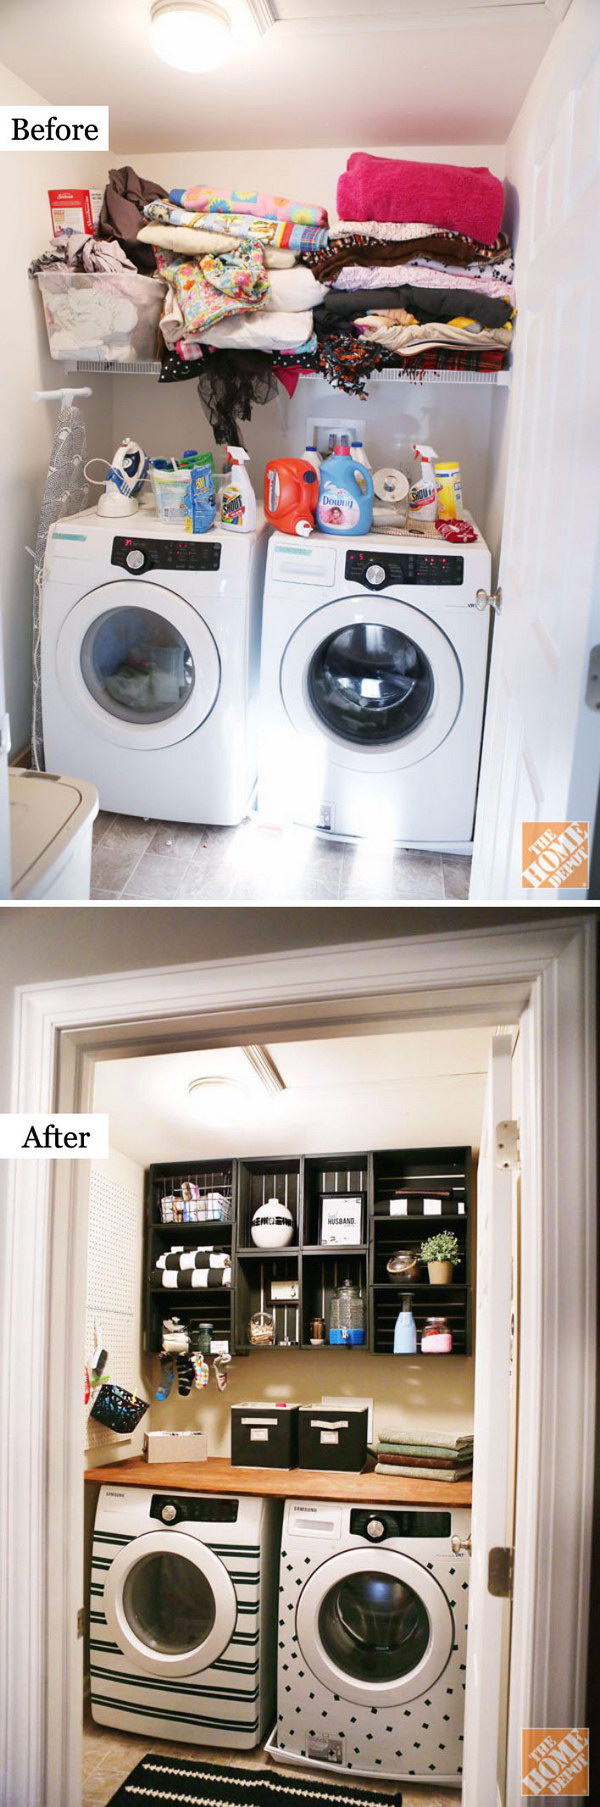 Awesome Before and After Laundry Room Makeovers - Hative on Amazing Laundry Rooms  id=13033